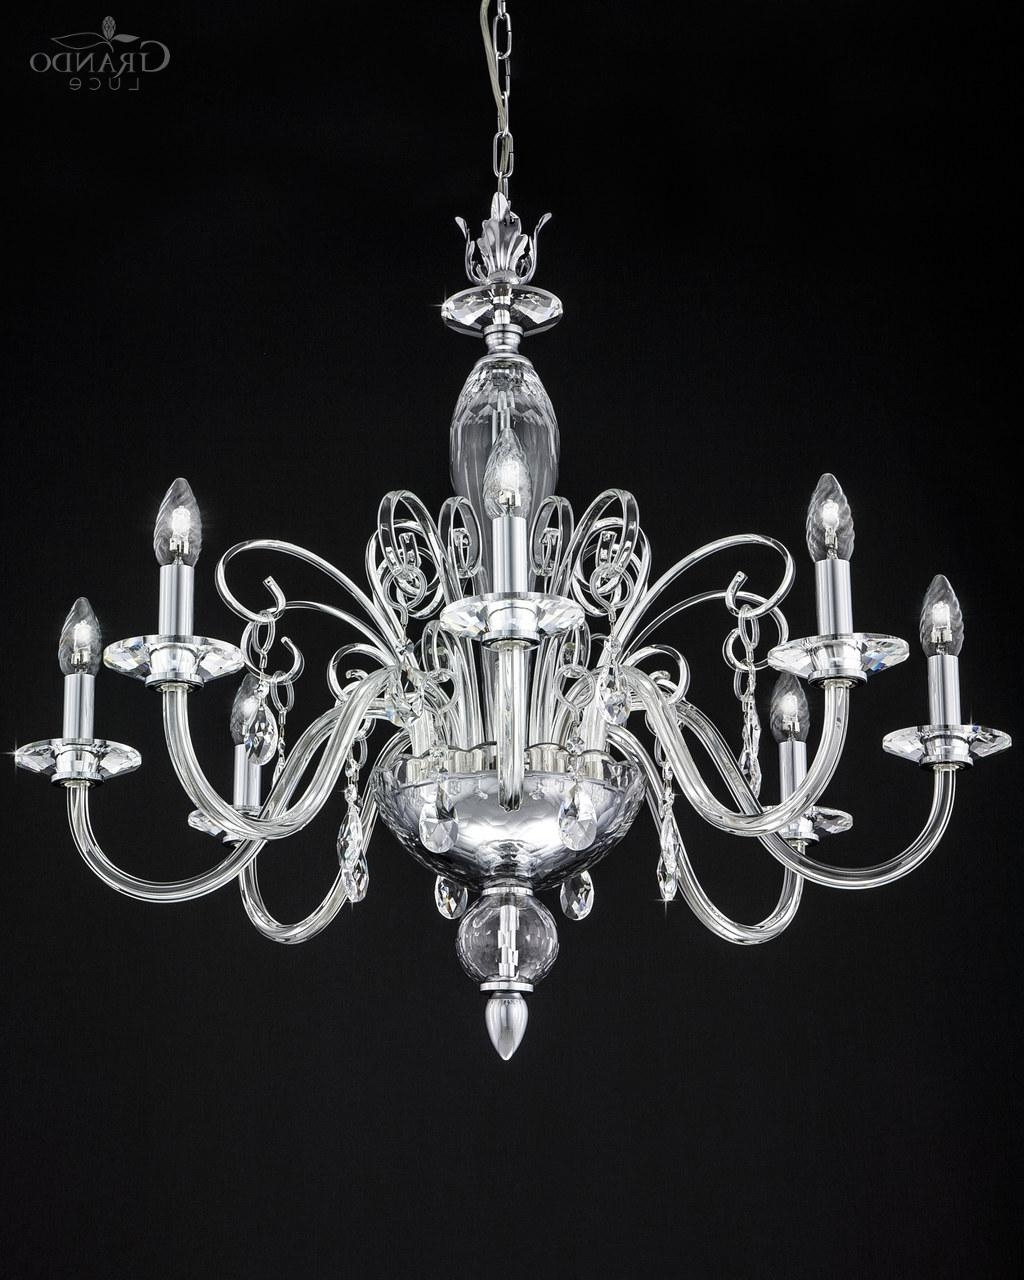 Well Liked 120/ch 8 Chrome Crystal Chandelier With Swarovski Elements (View 14 of 15)